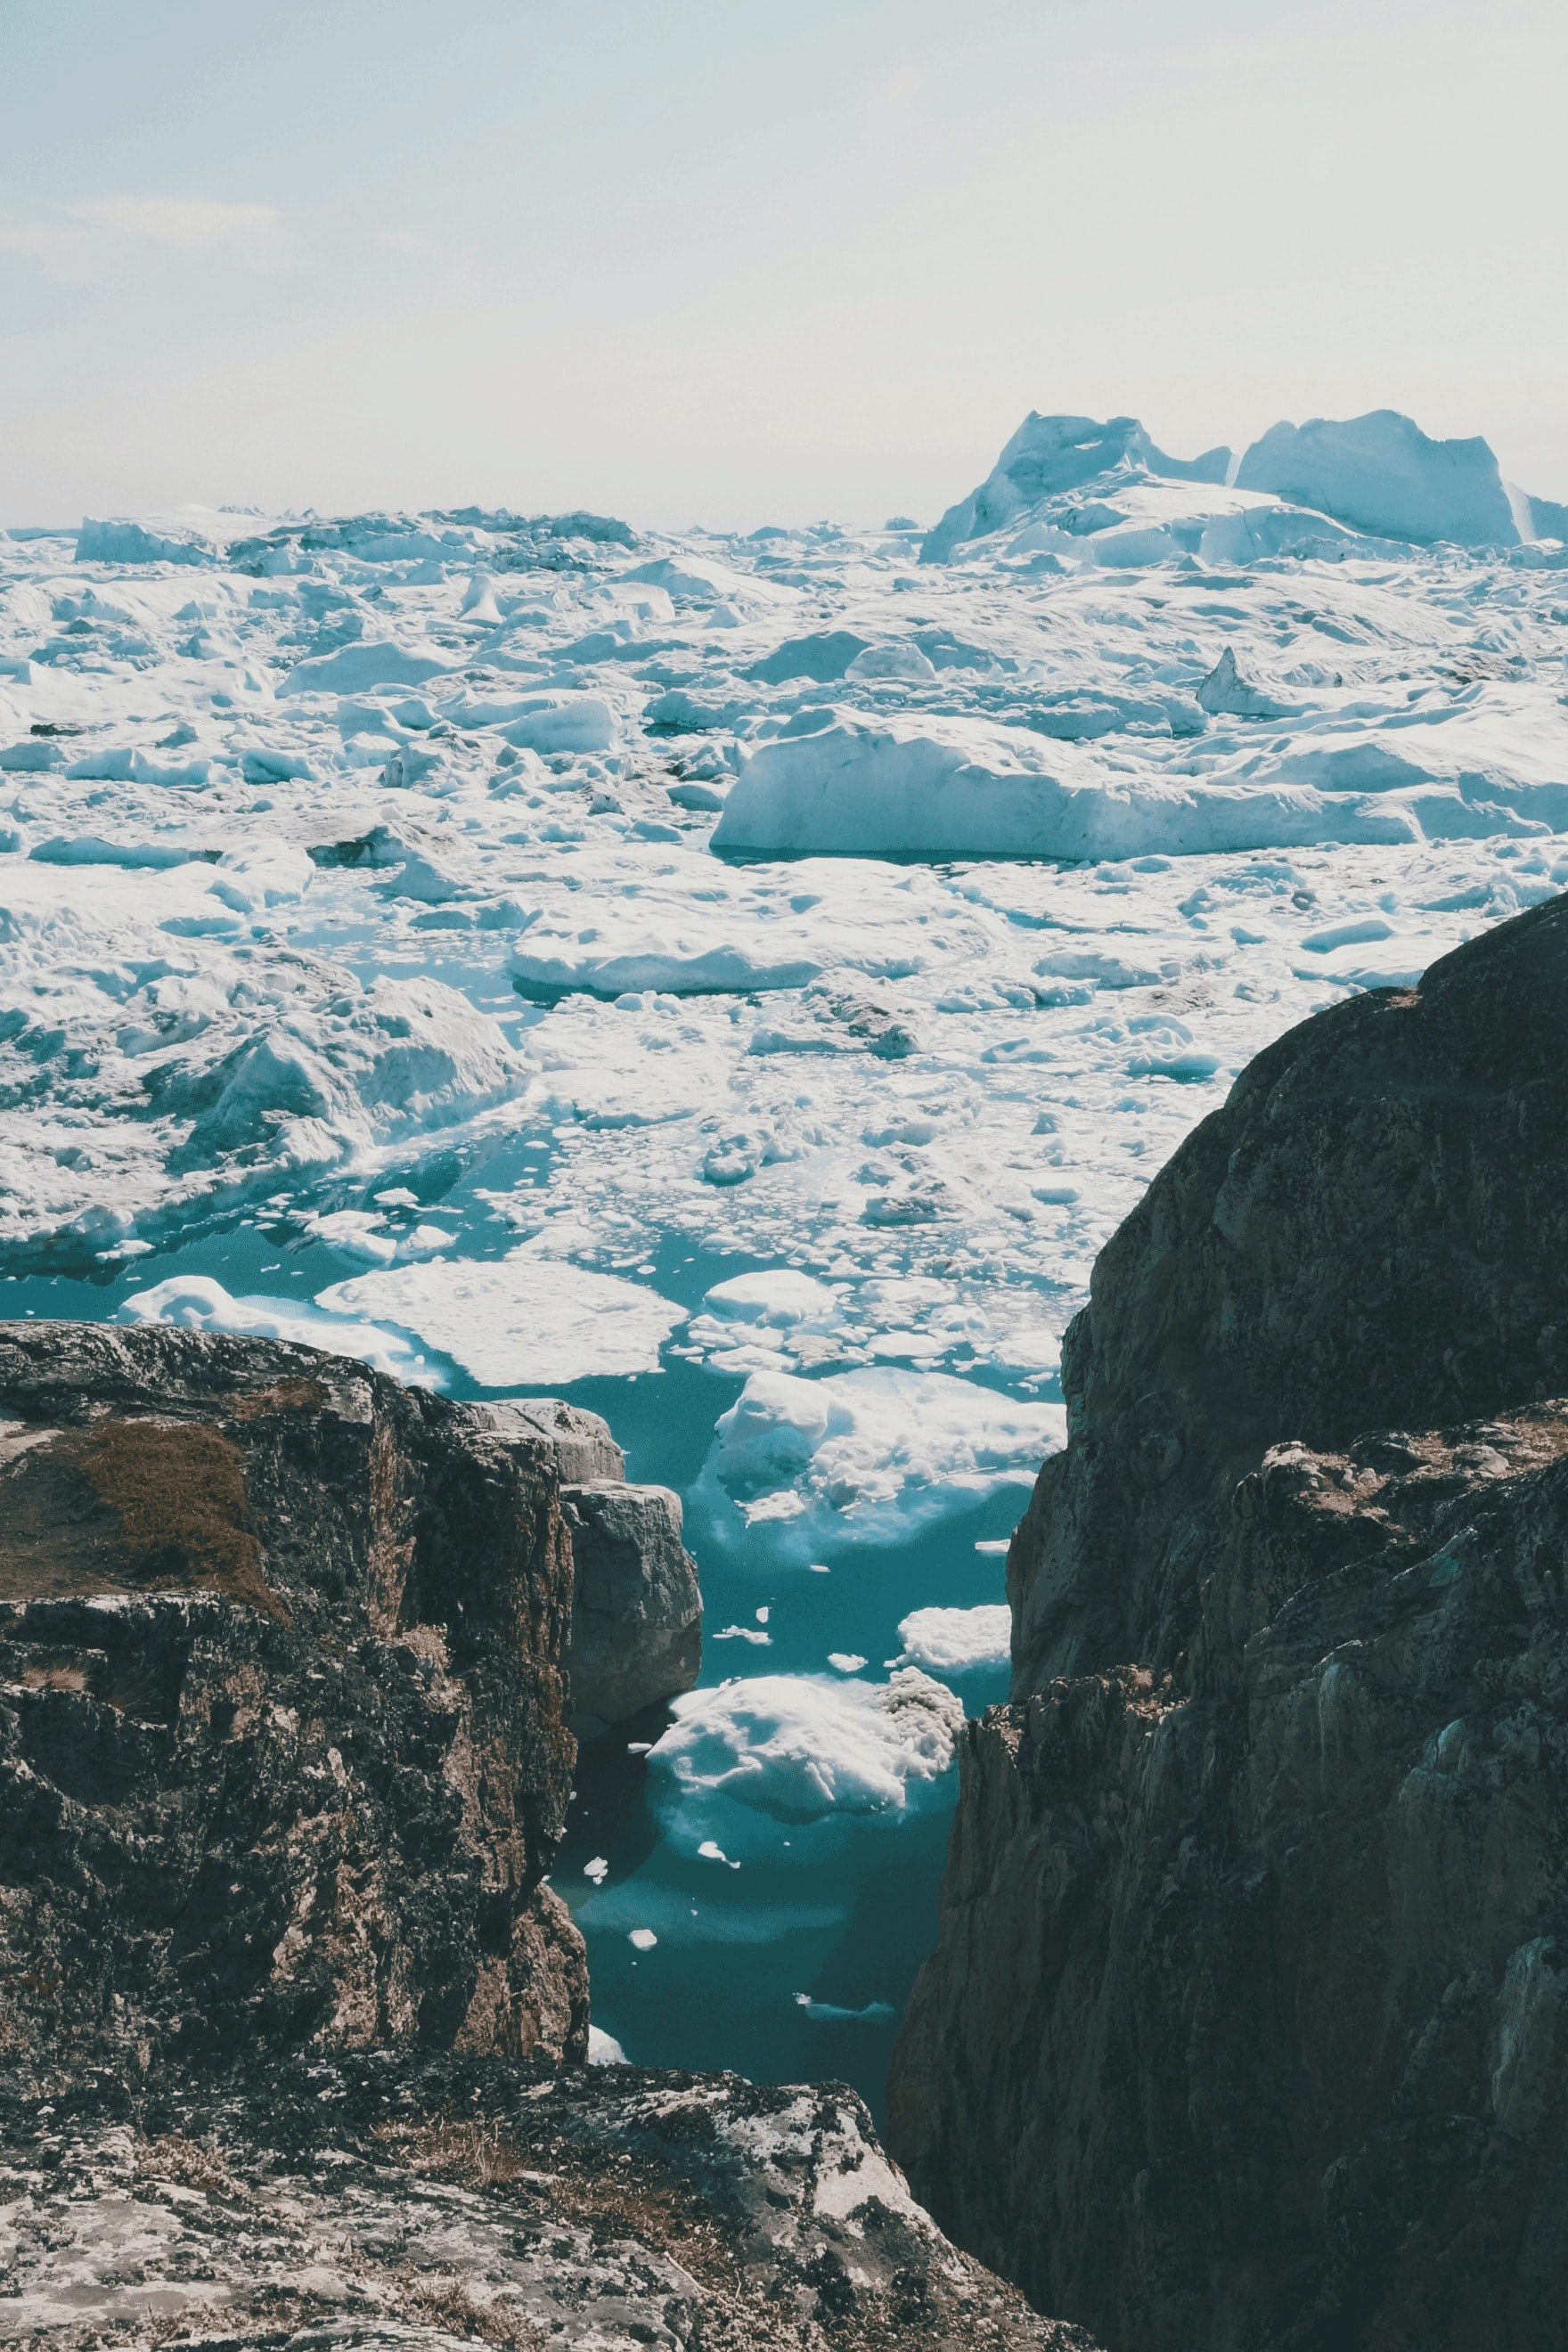 On August, I spent about two weeks in Iceland and Greenland. This glacier was the first astonishment as we arrived in Iceland. The first time in my life sitting so close to the glacier and touch the cold water. Not just cold but extremely freezing. Still, an unbelievably beautiful scenery with no doubt.